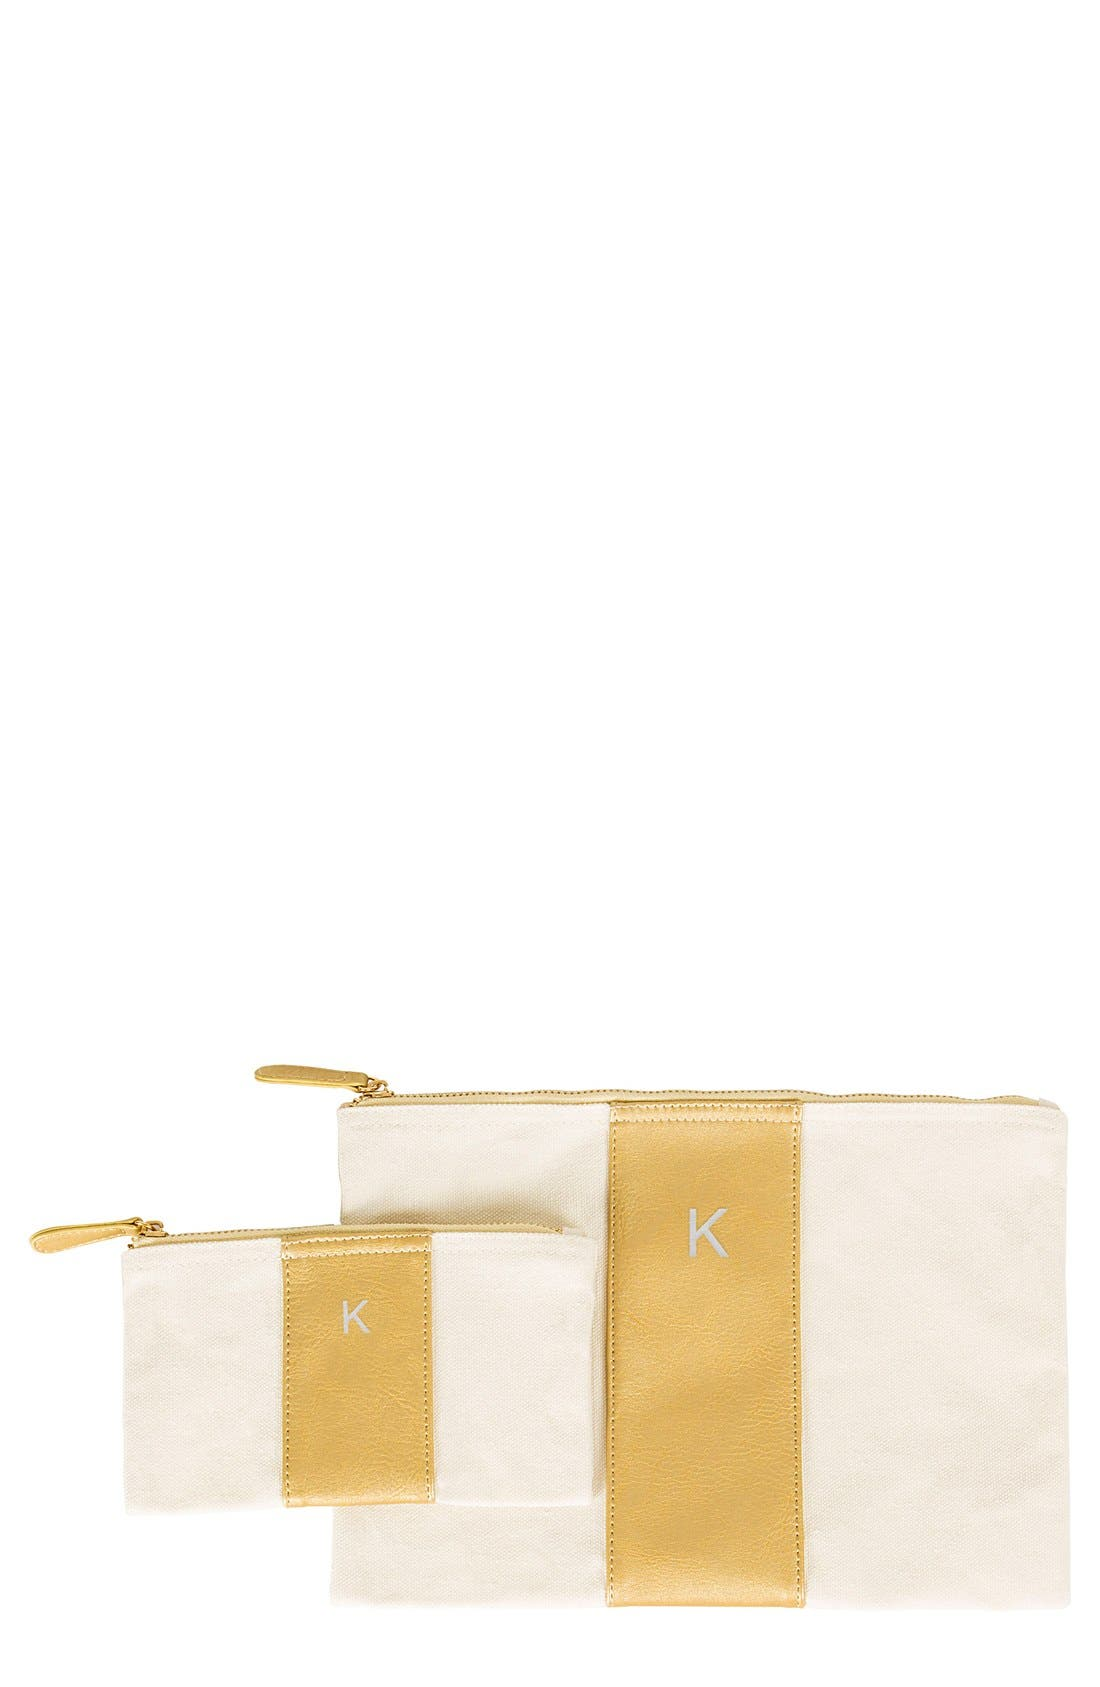 Personalized Faux Leather Clutch,                             Main thumbnail 29, color,